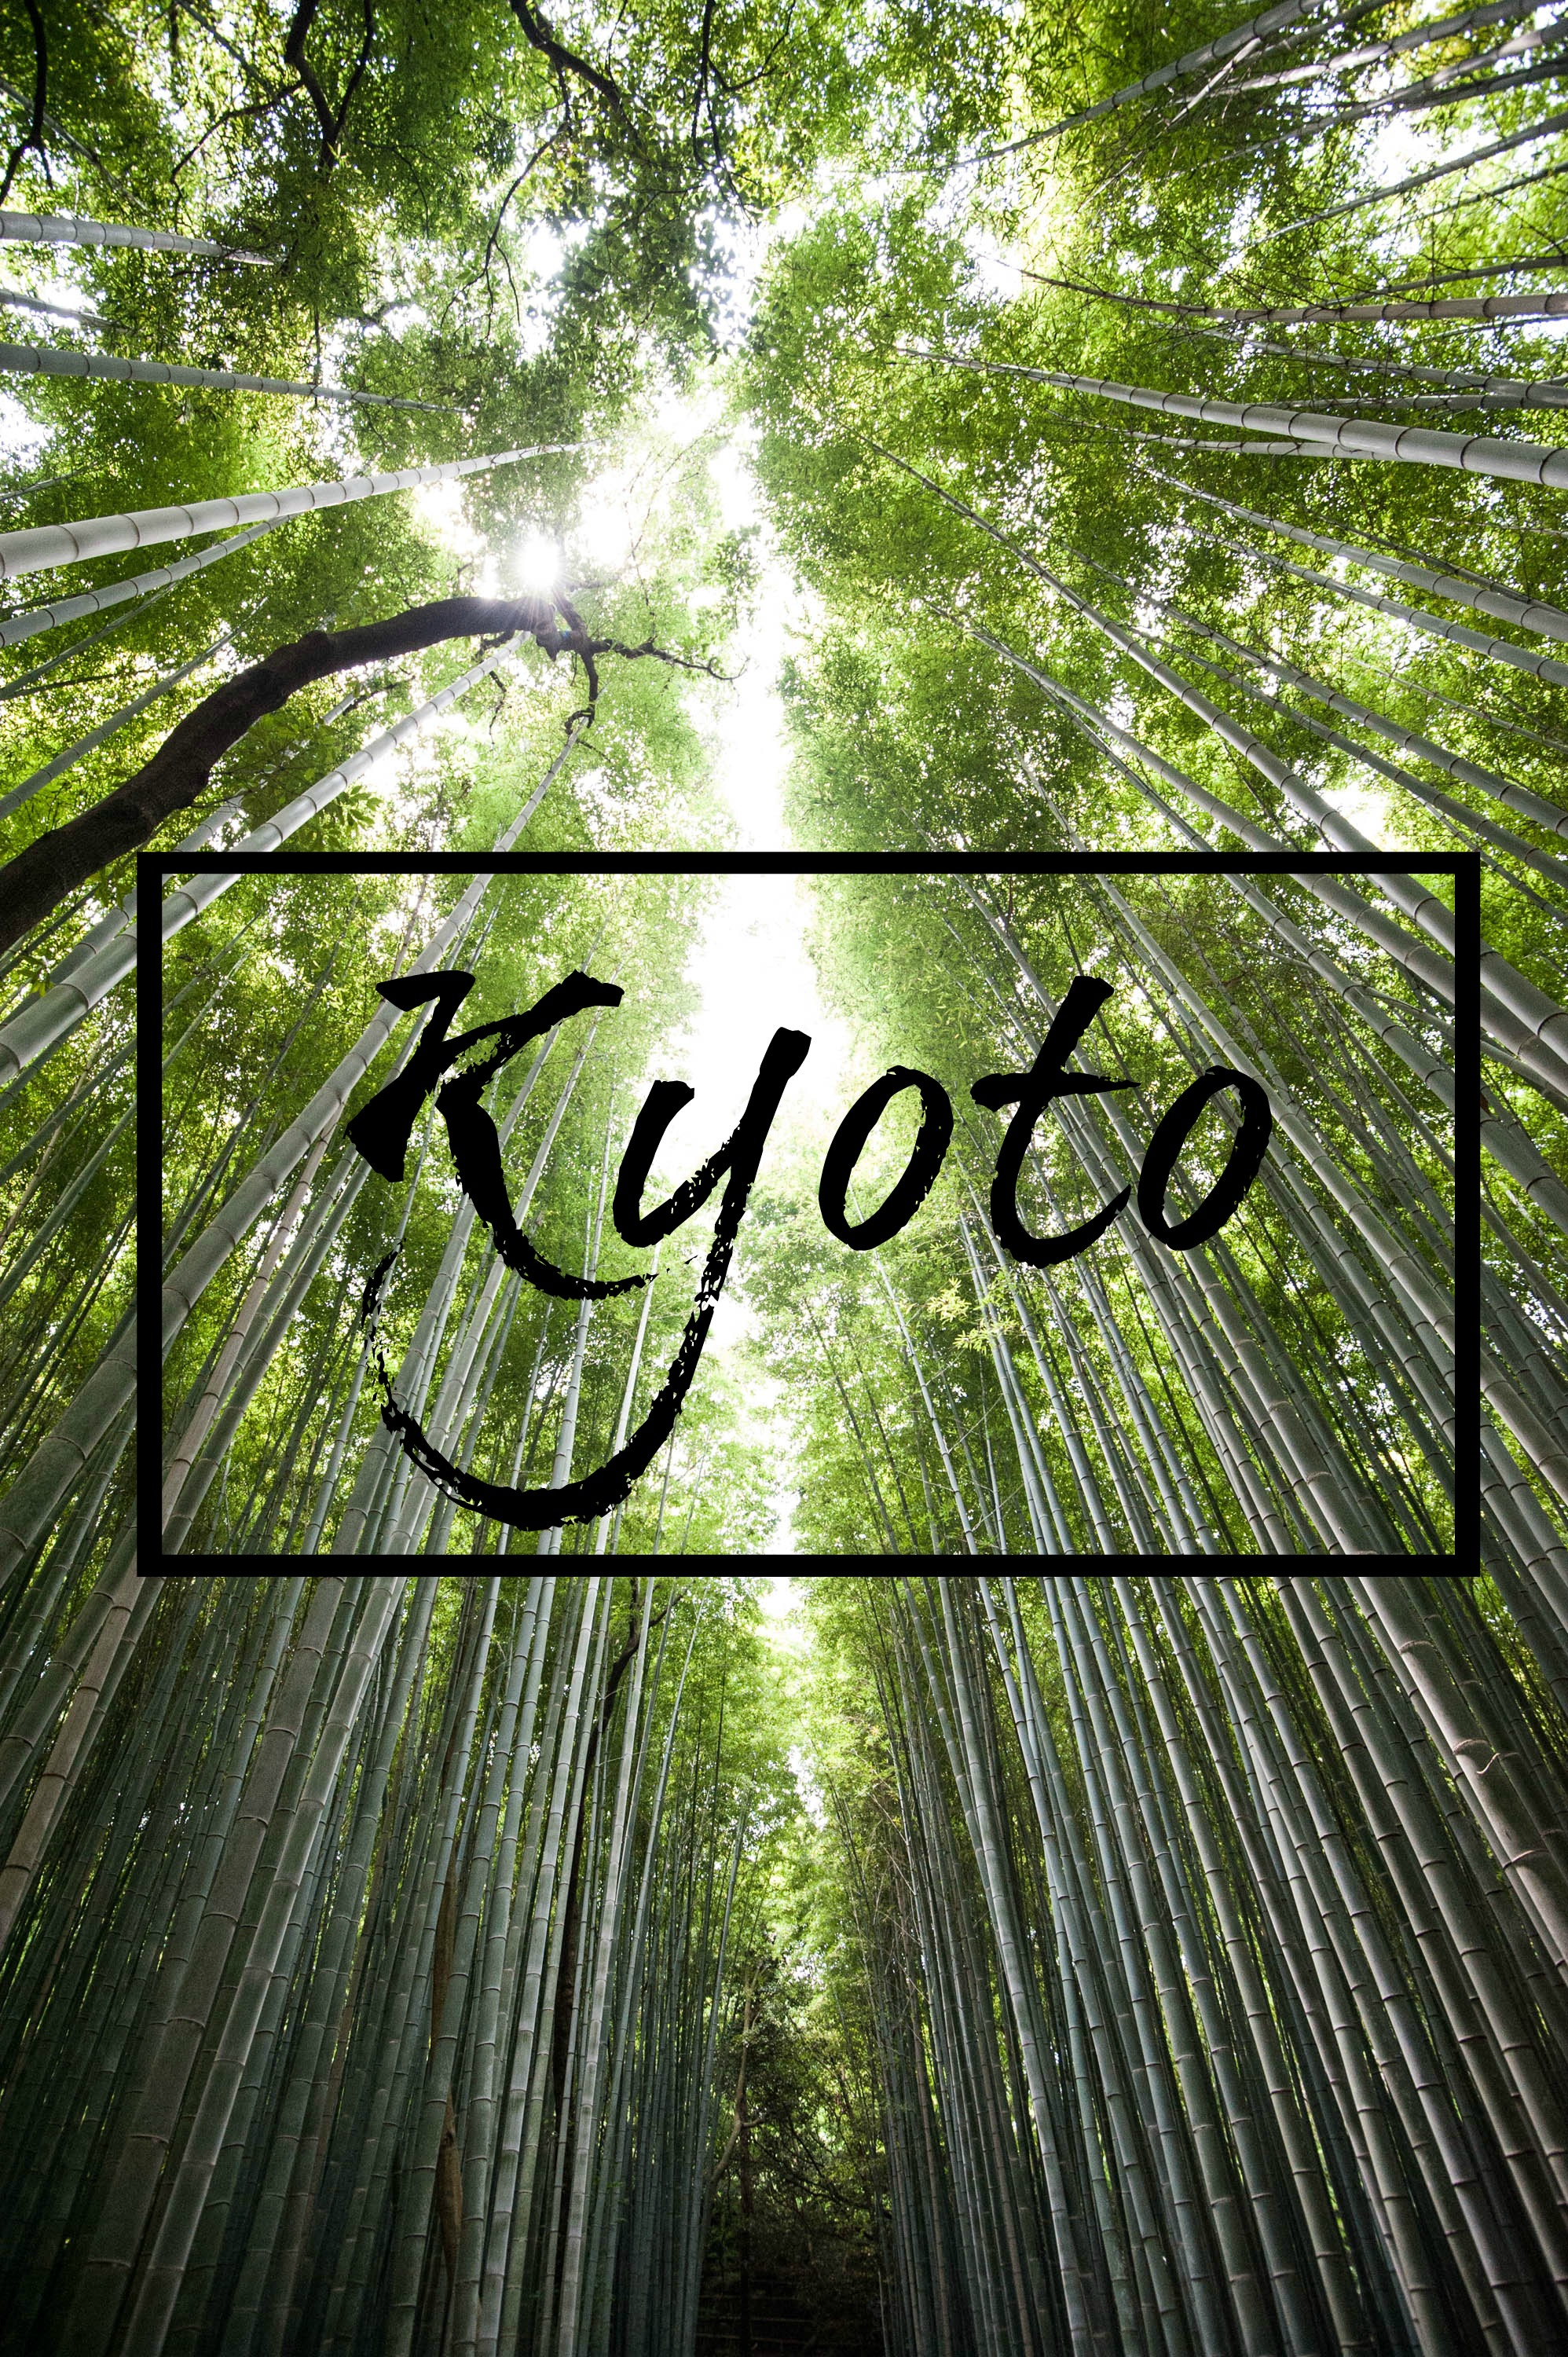 Our 3 Day Kyoto Itinerary: Visiting the Highlights